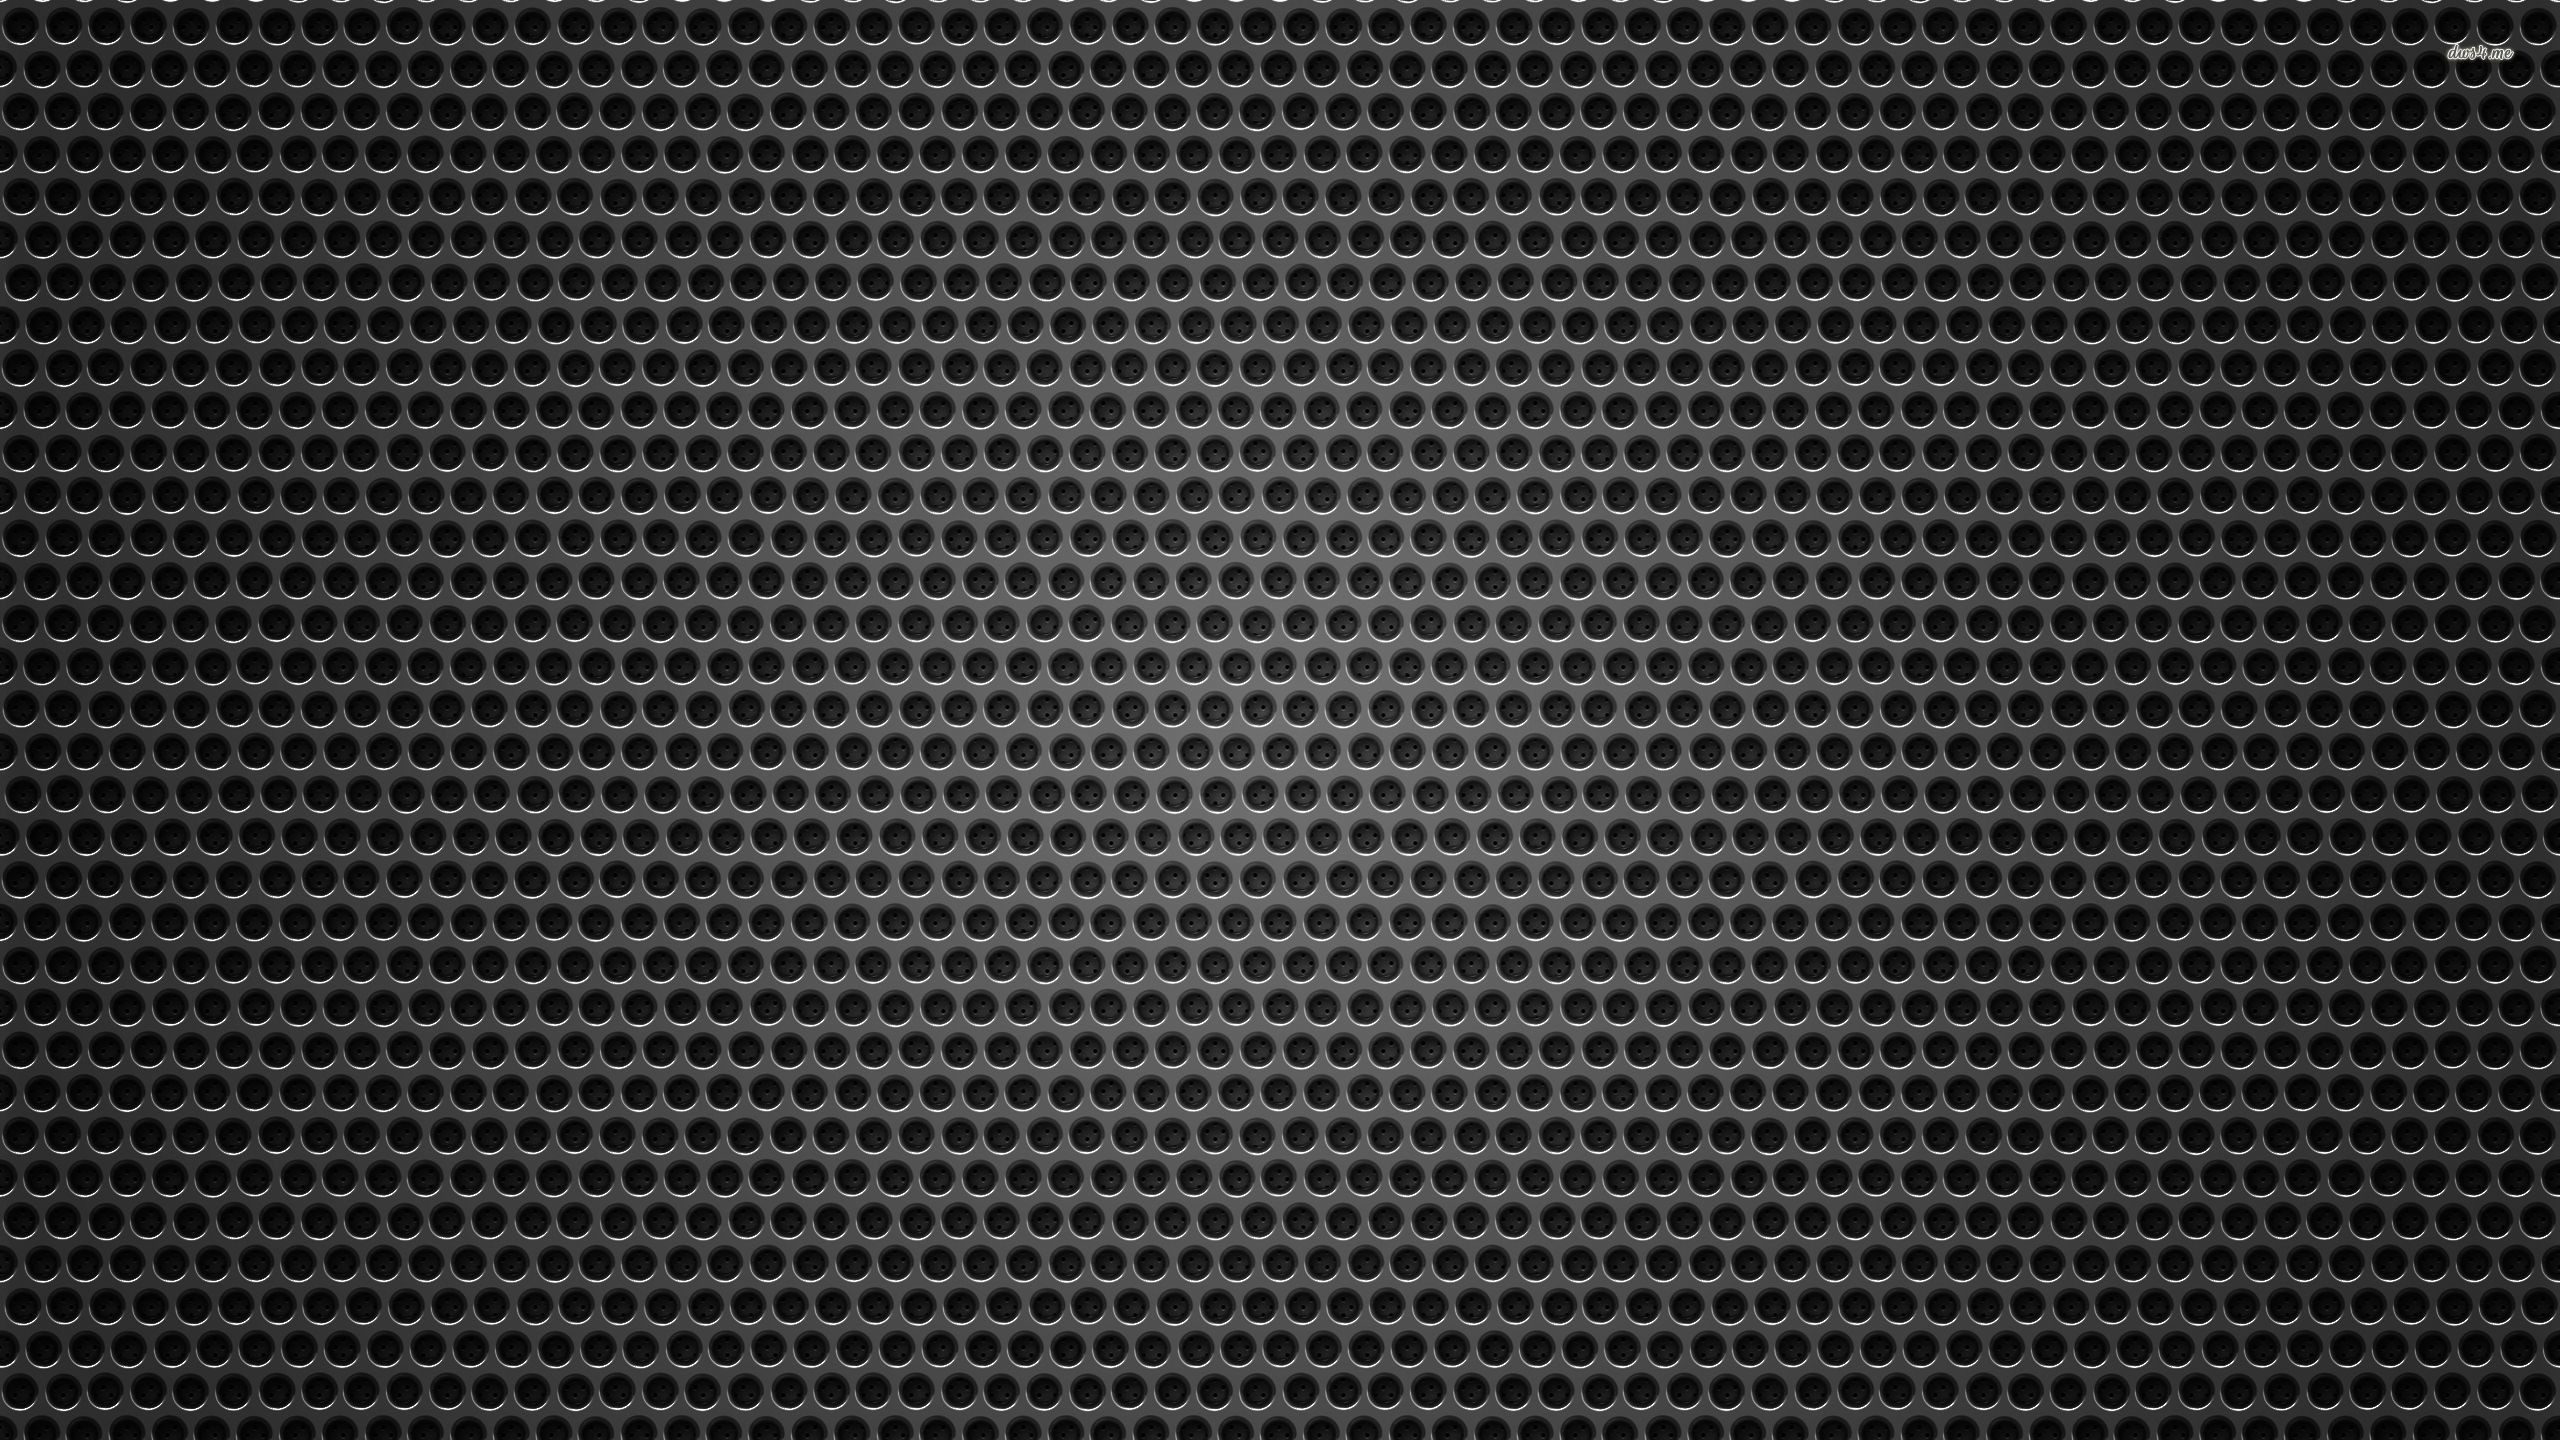 Res: 2560x1440, Metallic circles with black dots inside wallpaper - Abstract .